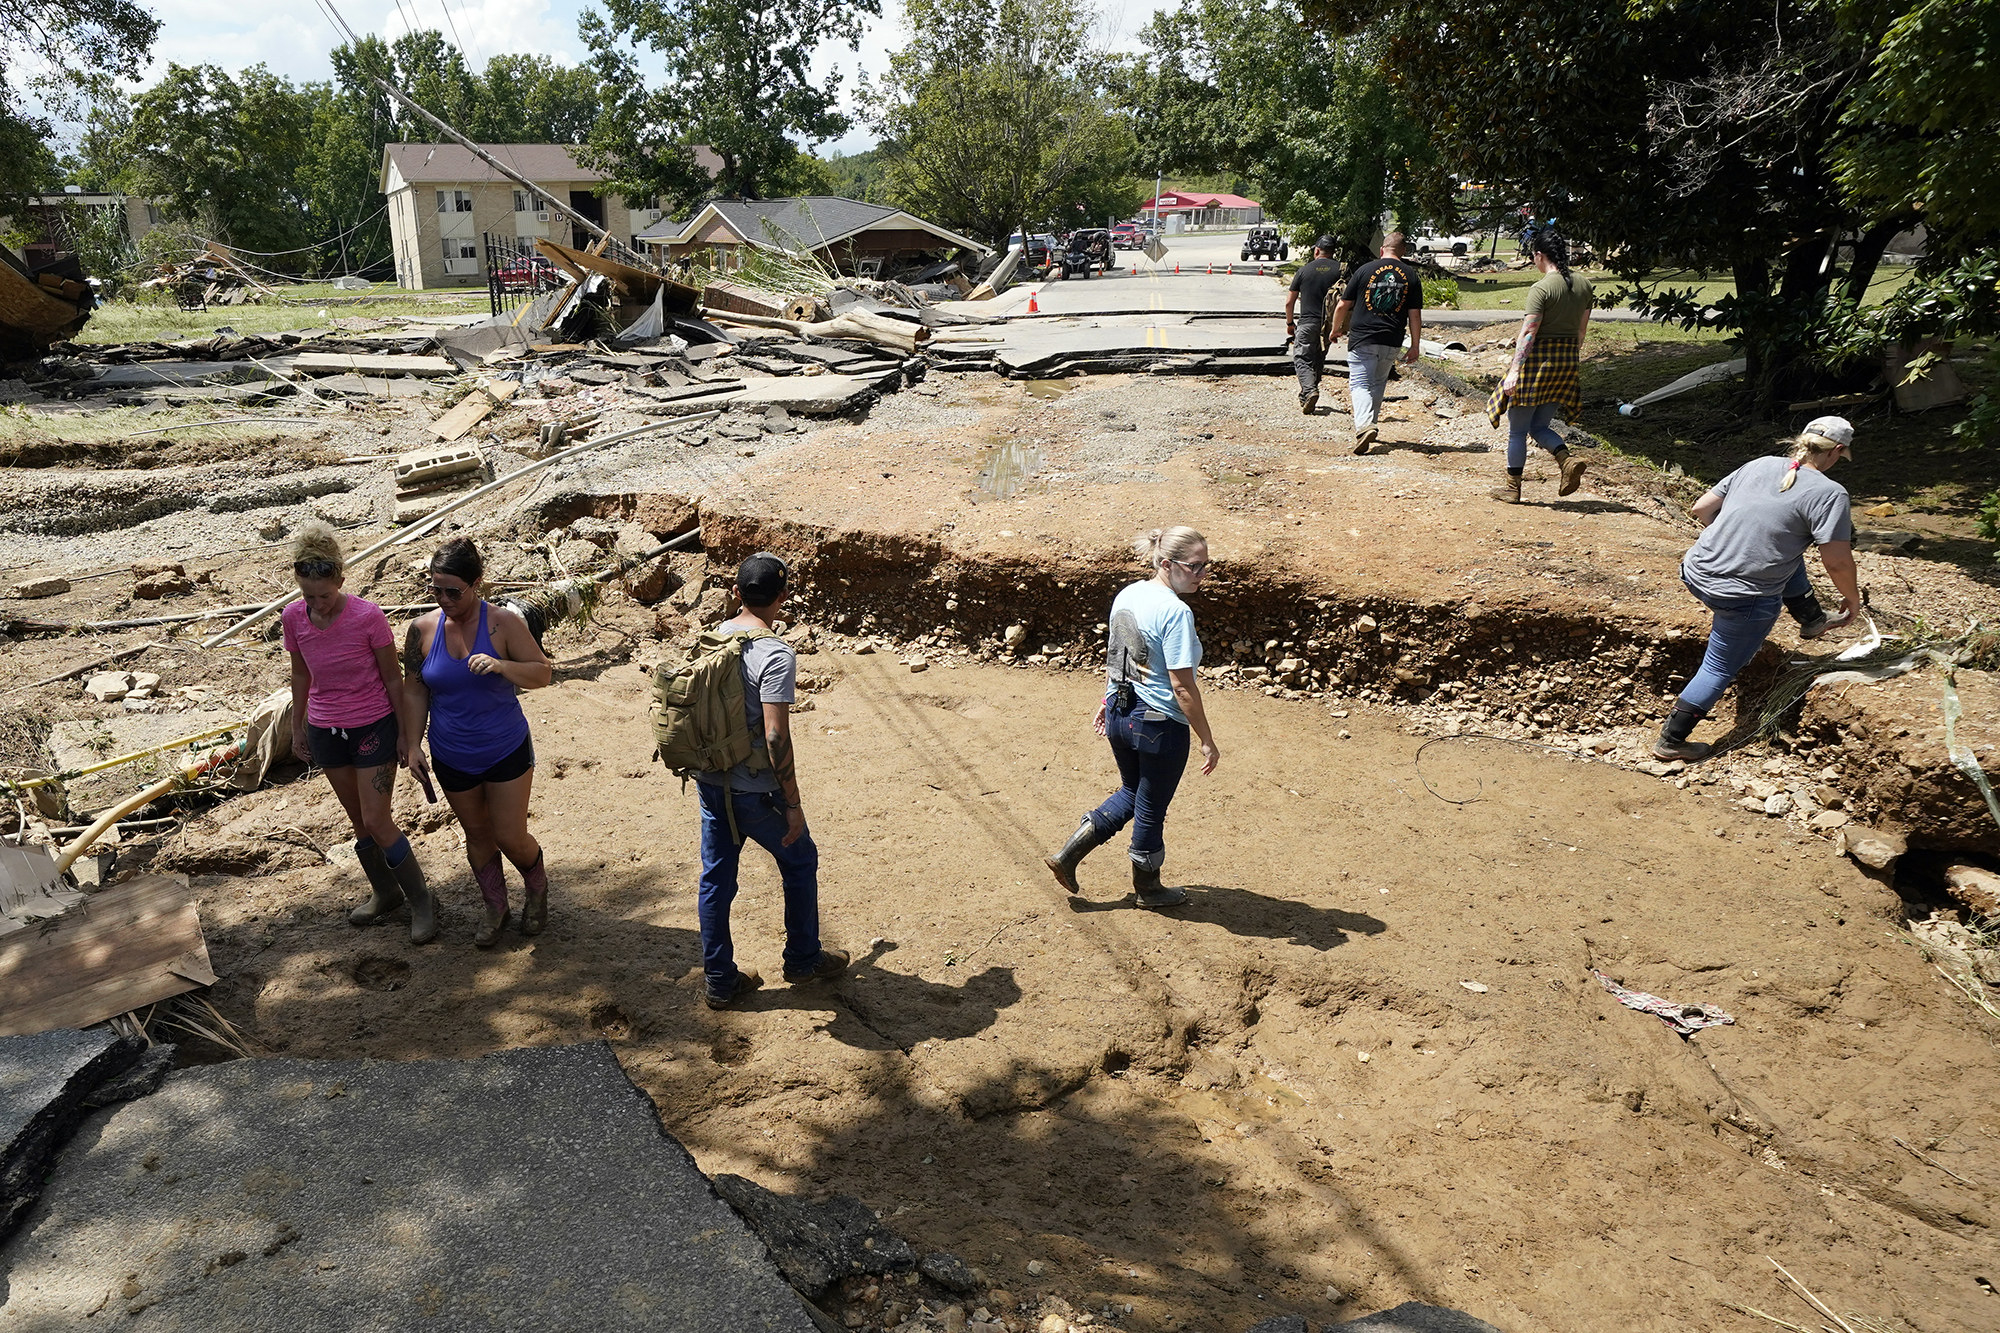 People walk through a dirt road where pavement and debris from collapsed homes litter the ground